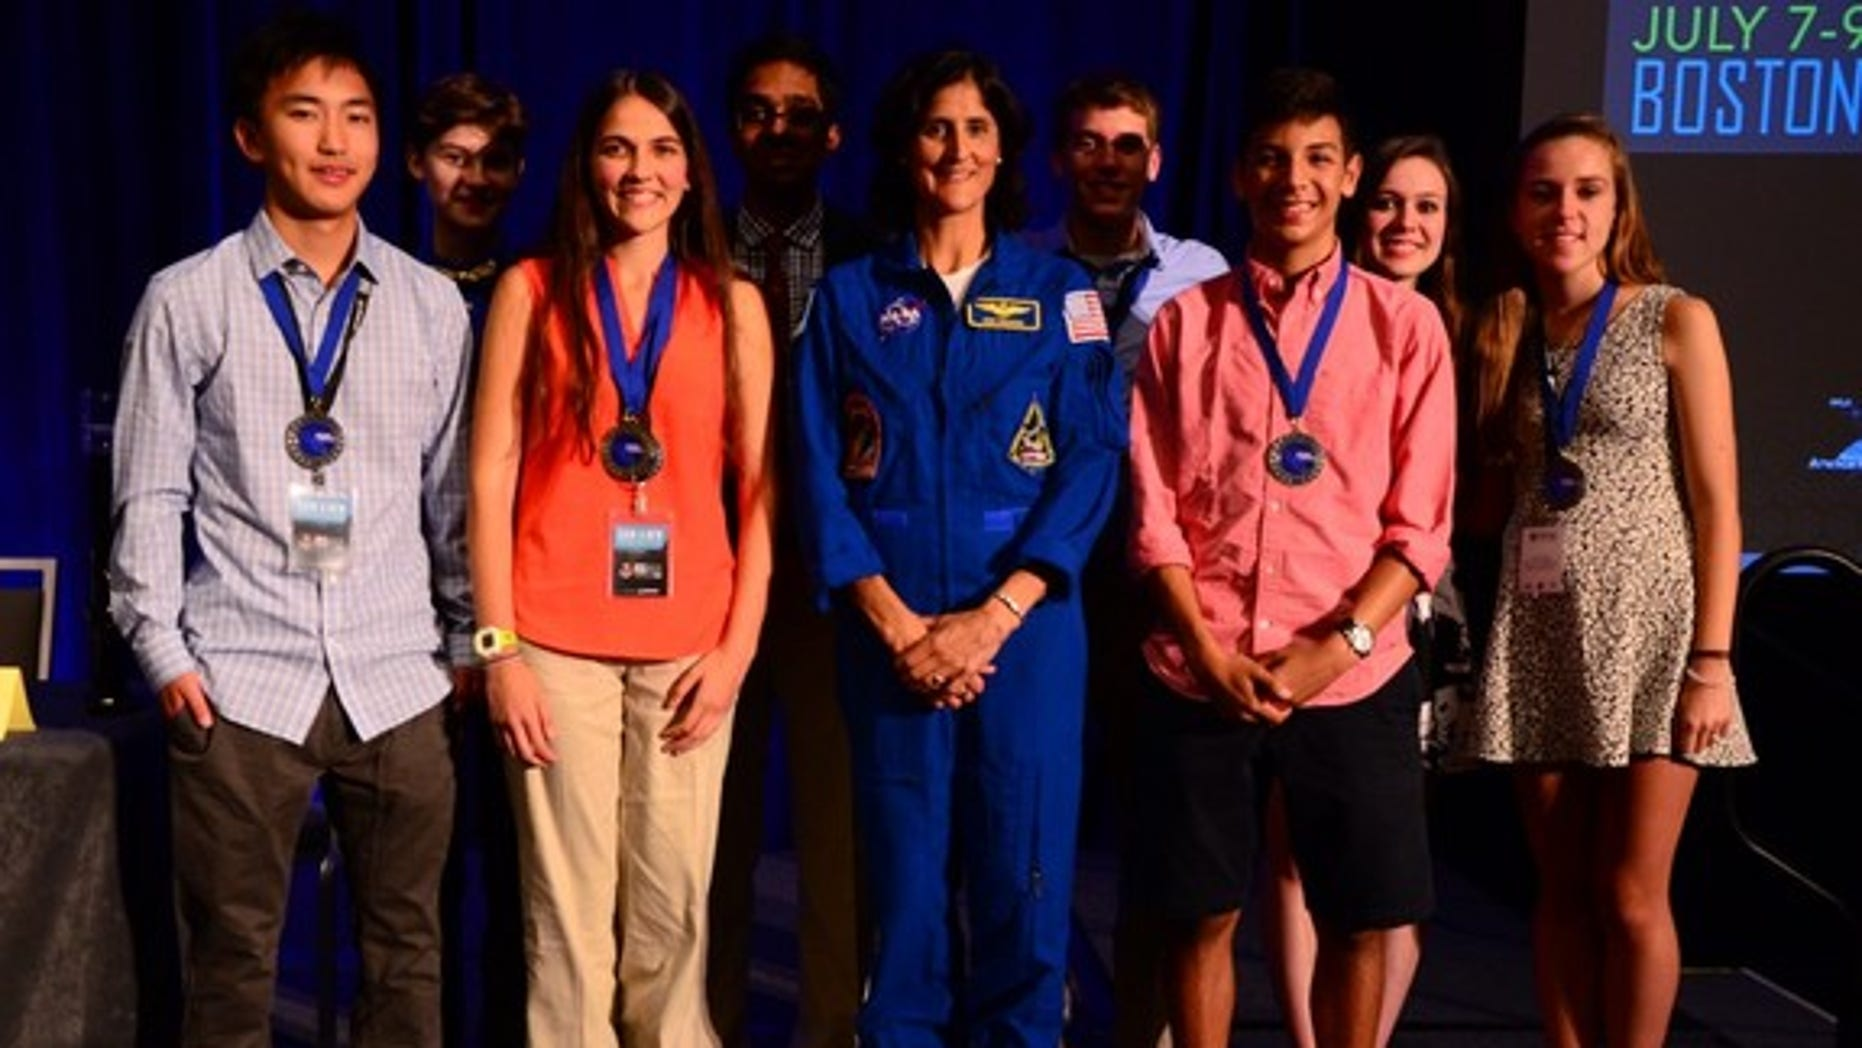 Anna-Sophia Boguraev, 16, of Bedford, New York, won the first ever Genes in Space contest for student experiments on the International Space Station. She can be seen here standing to the left of NASA astronaut Sunita Williams (center). They are